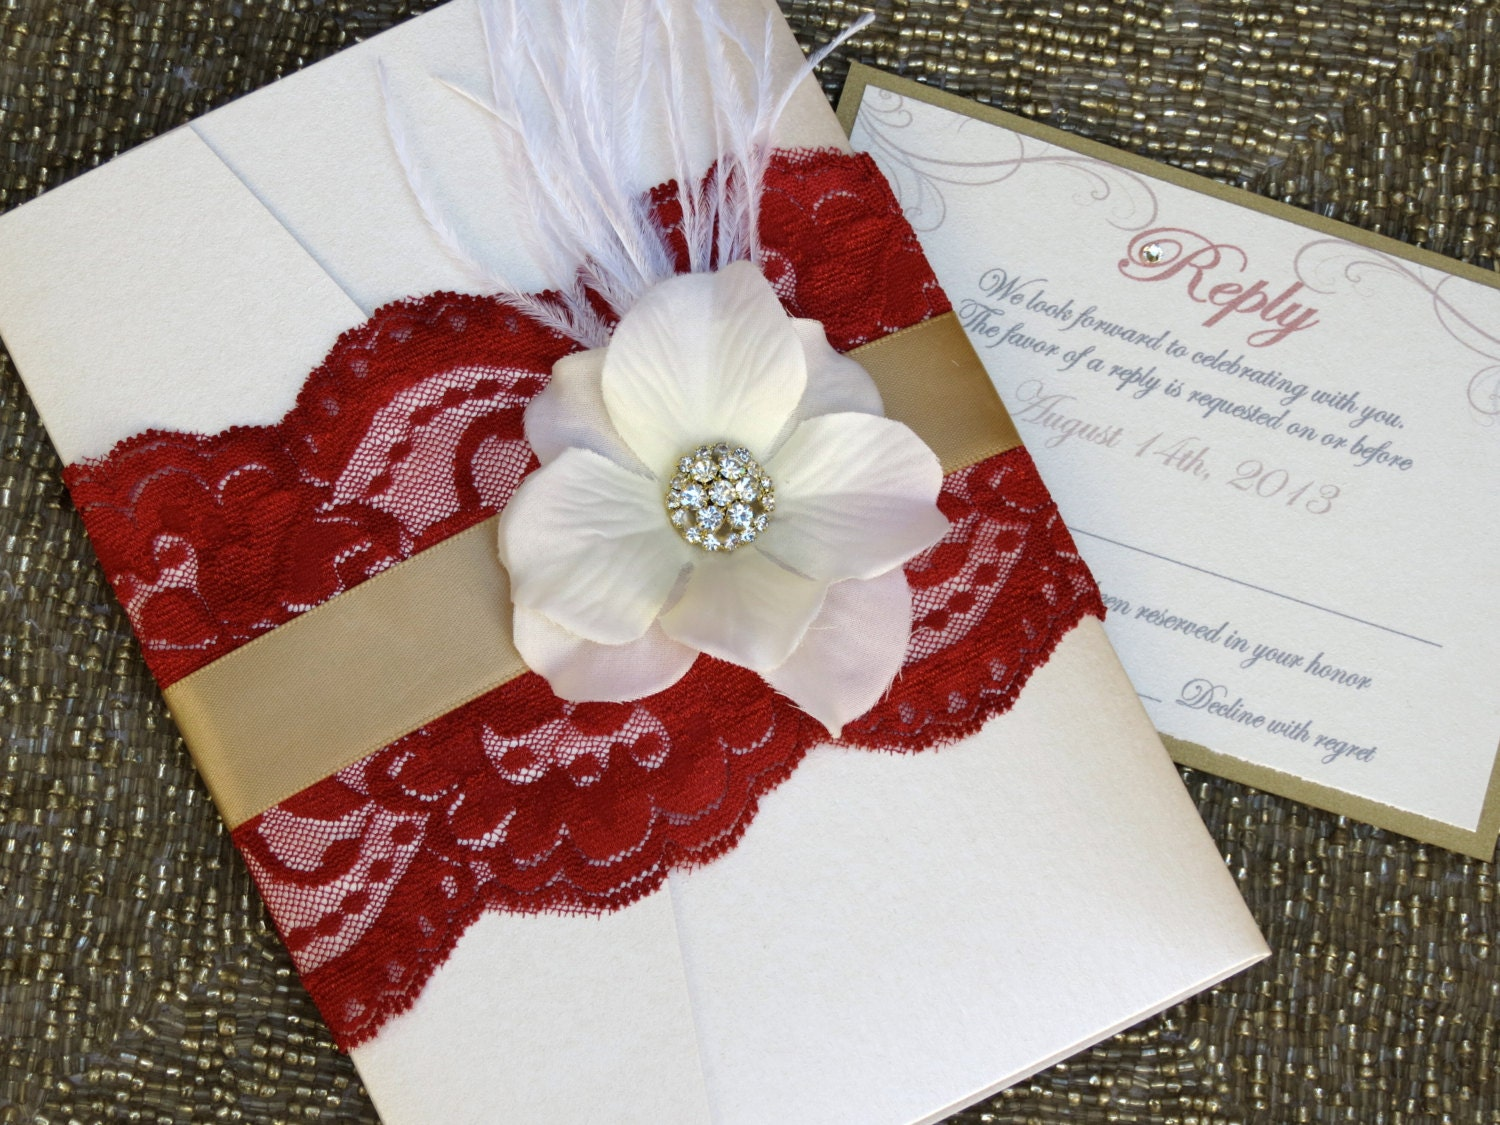 Vintage Glamour Wedding Invitations - Usefulresults